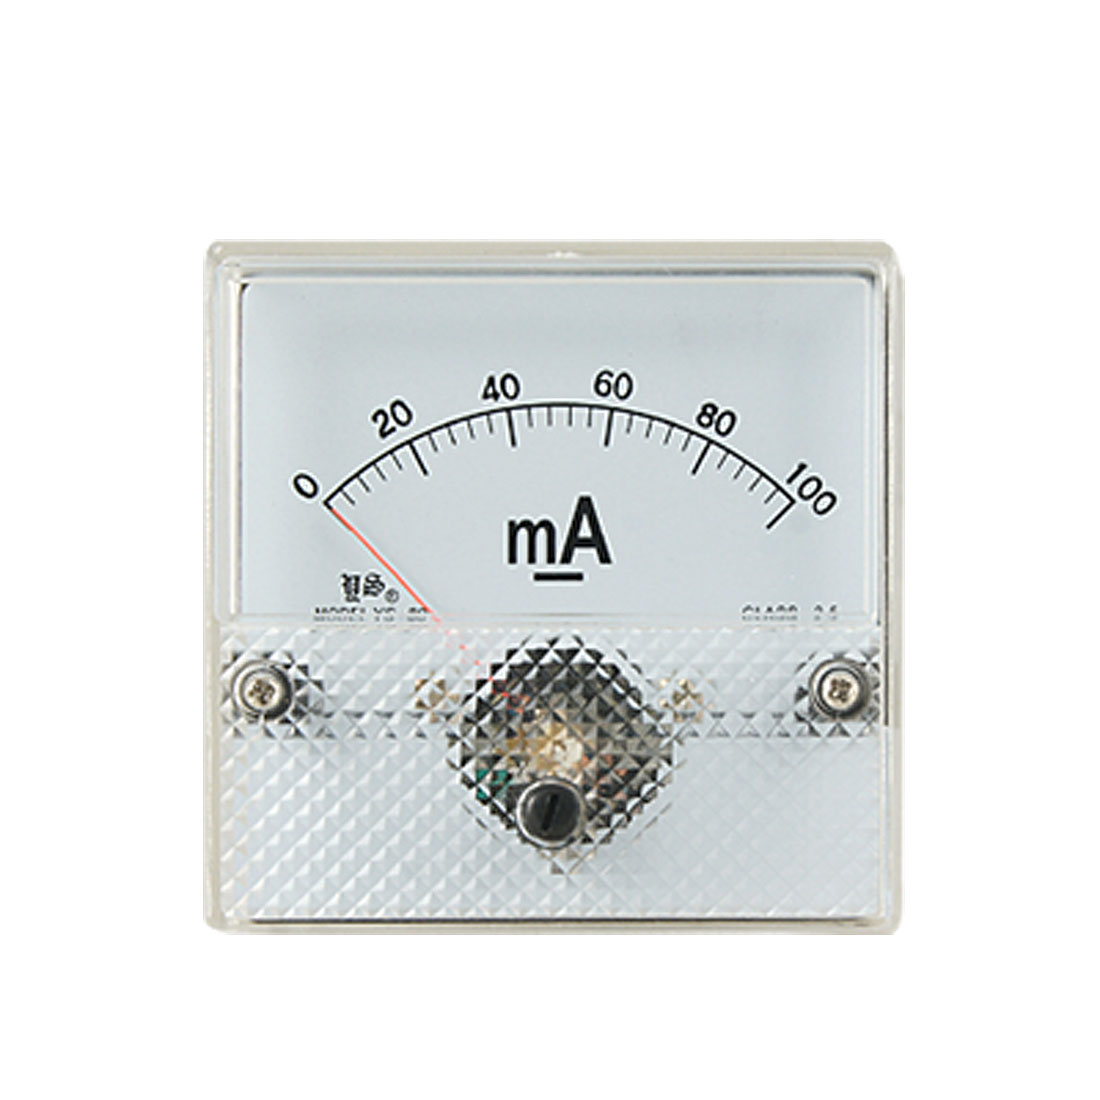 YS-80 DC 0-100mA Current Panel Meter Class 2.5 Analogue Amperemeter